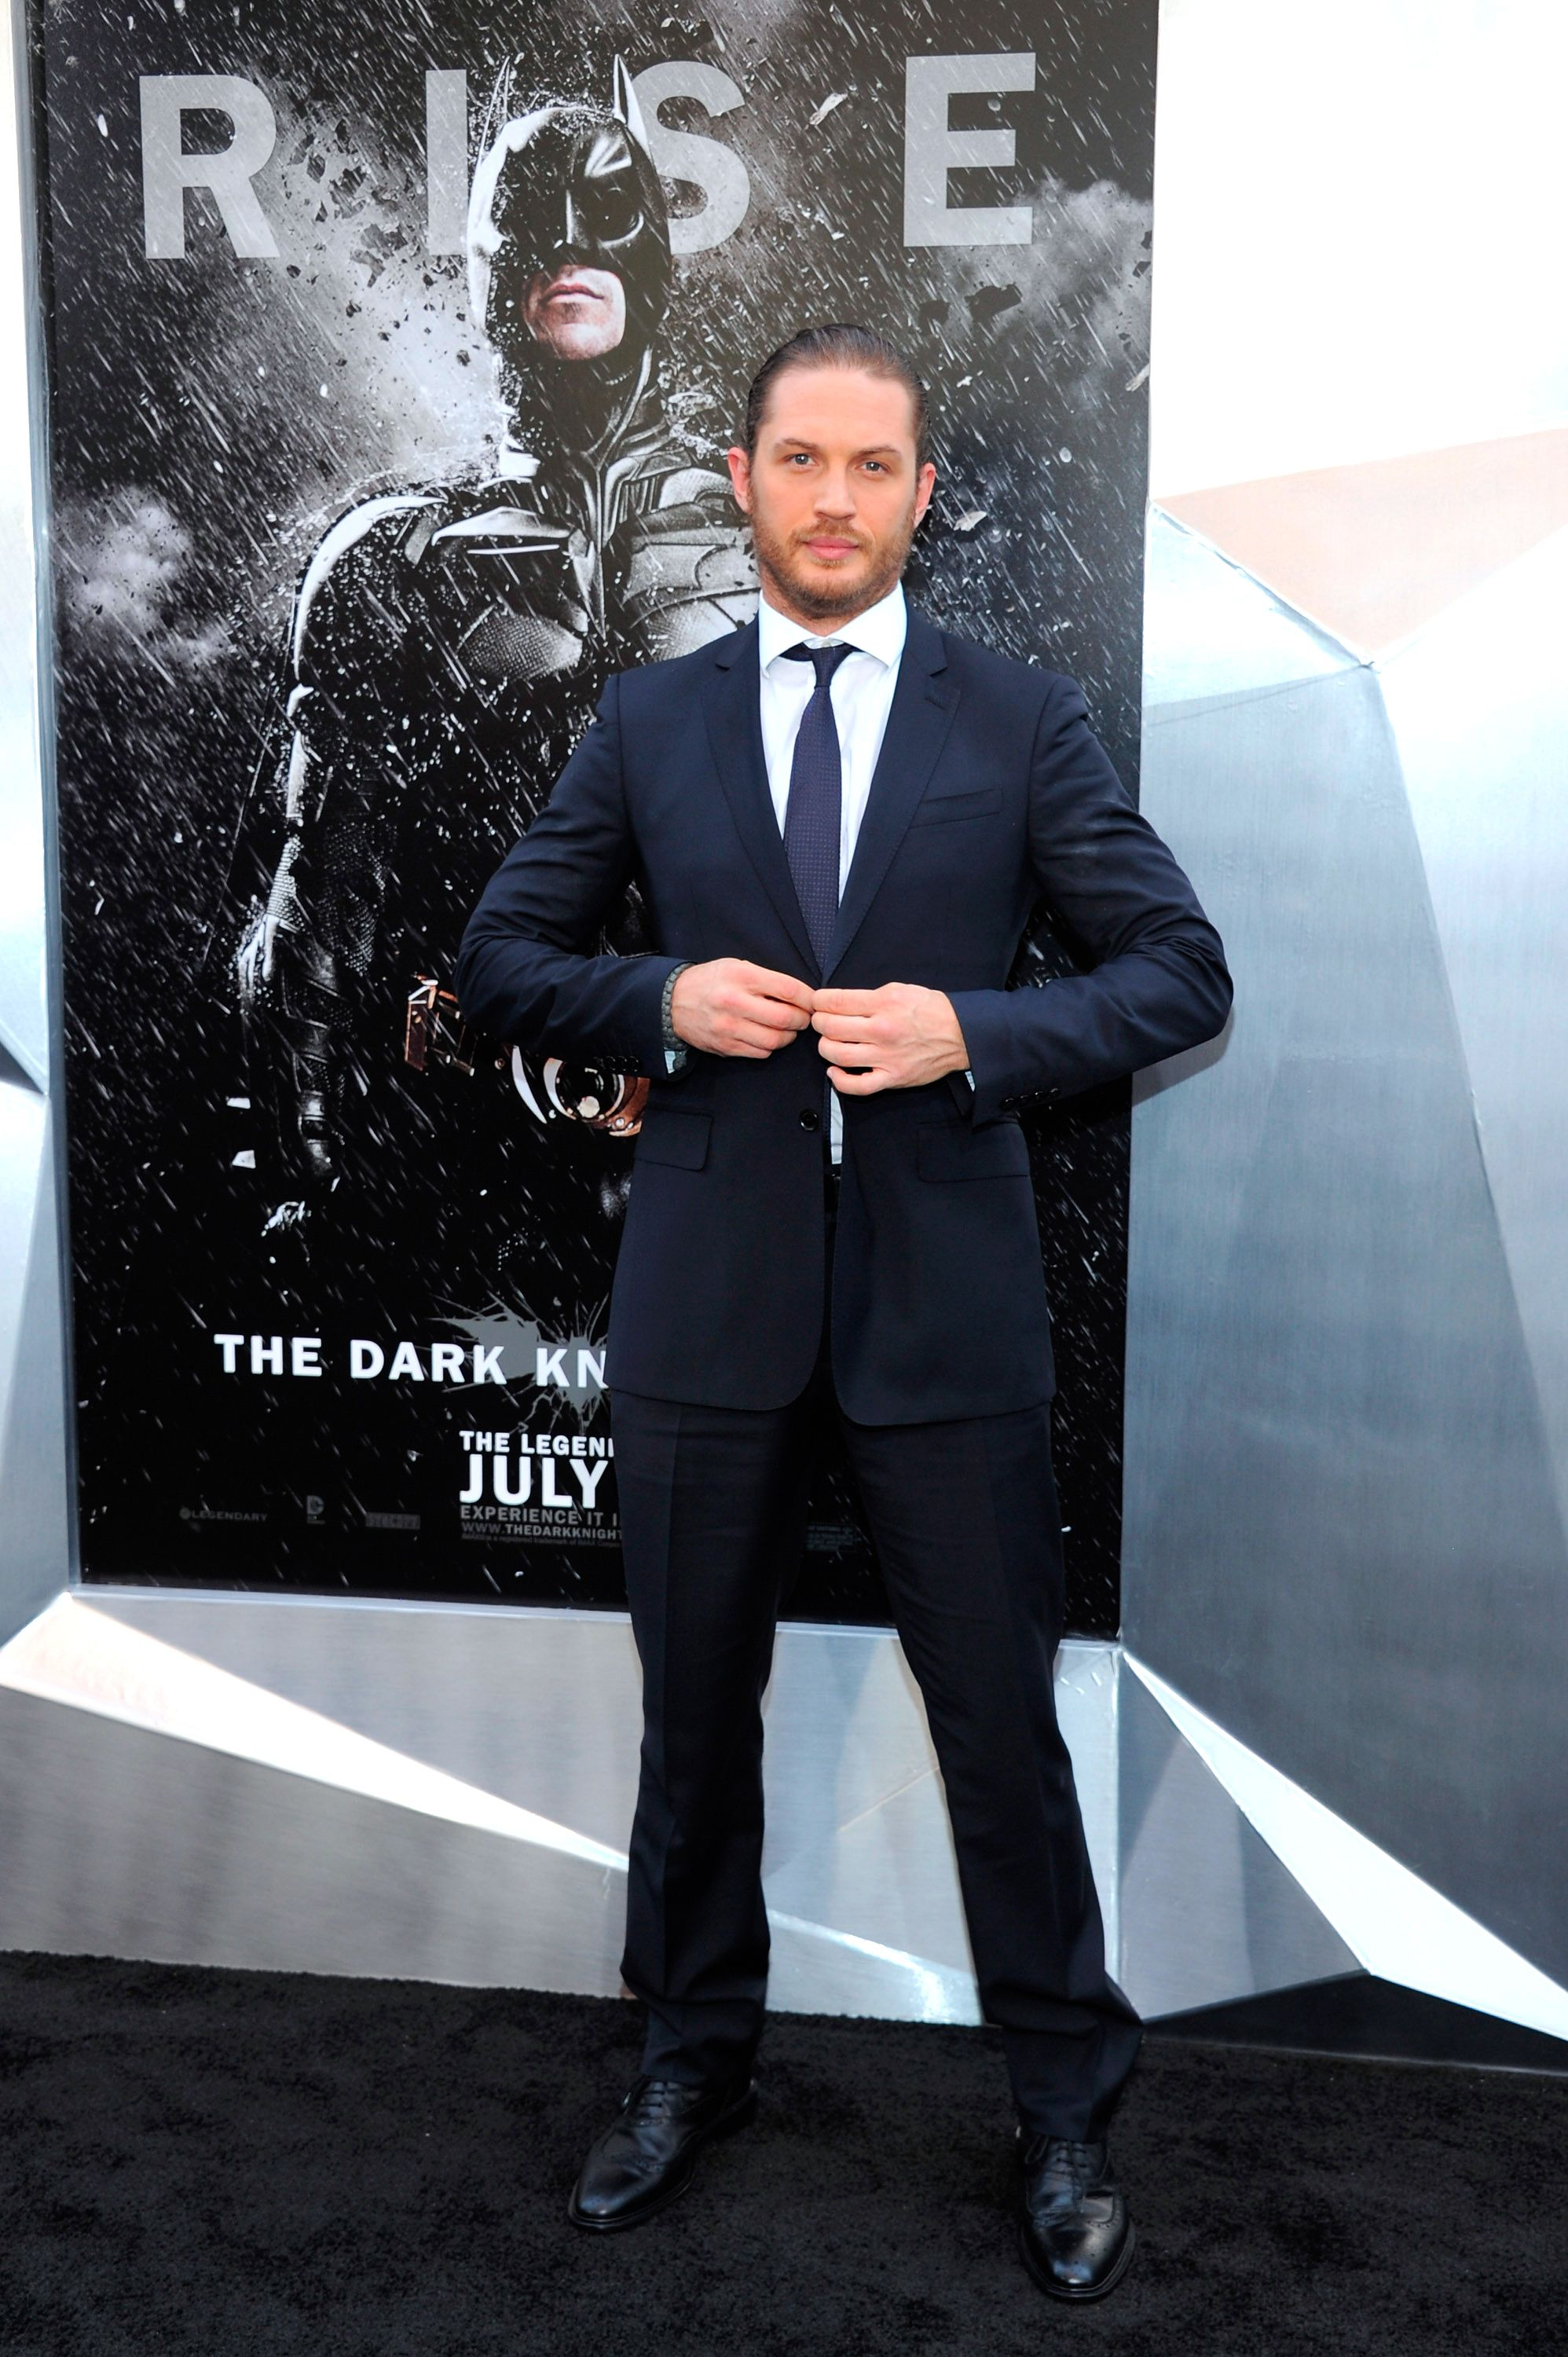 Tom Hardy Explains The Inspiration For His Bane Voice